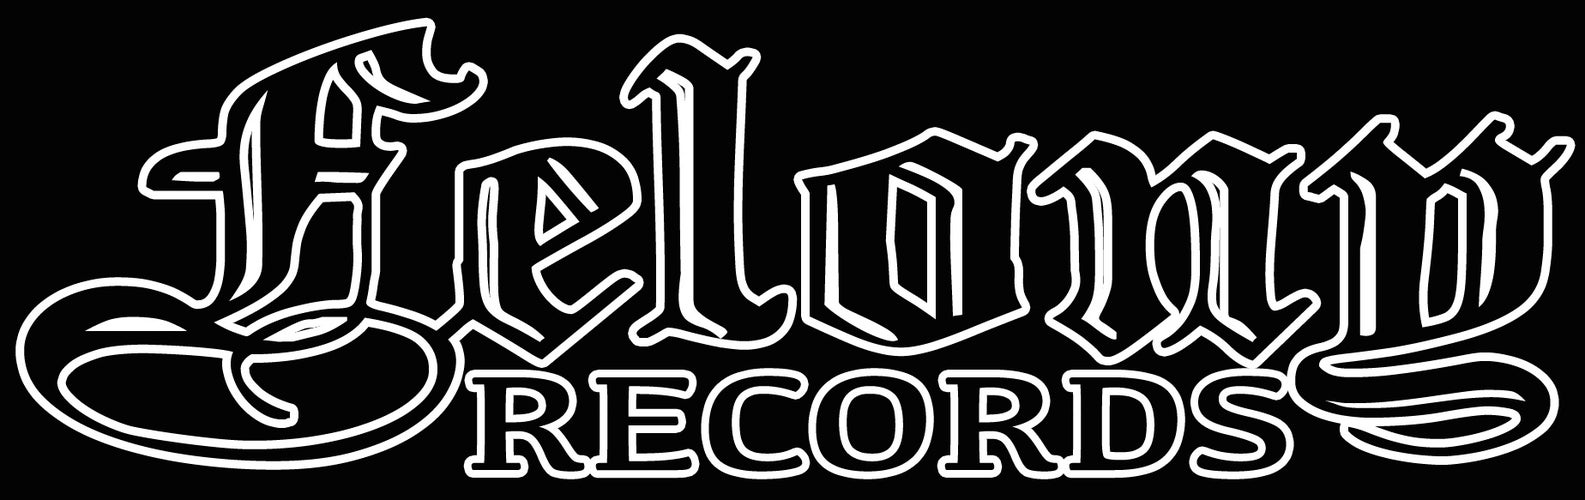 Felonyrecords